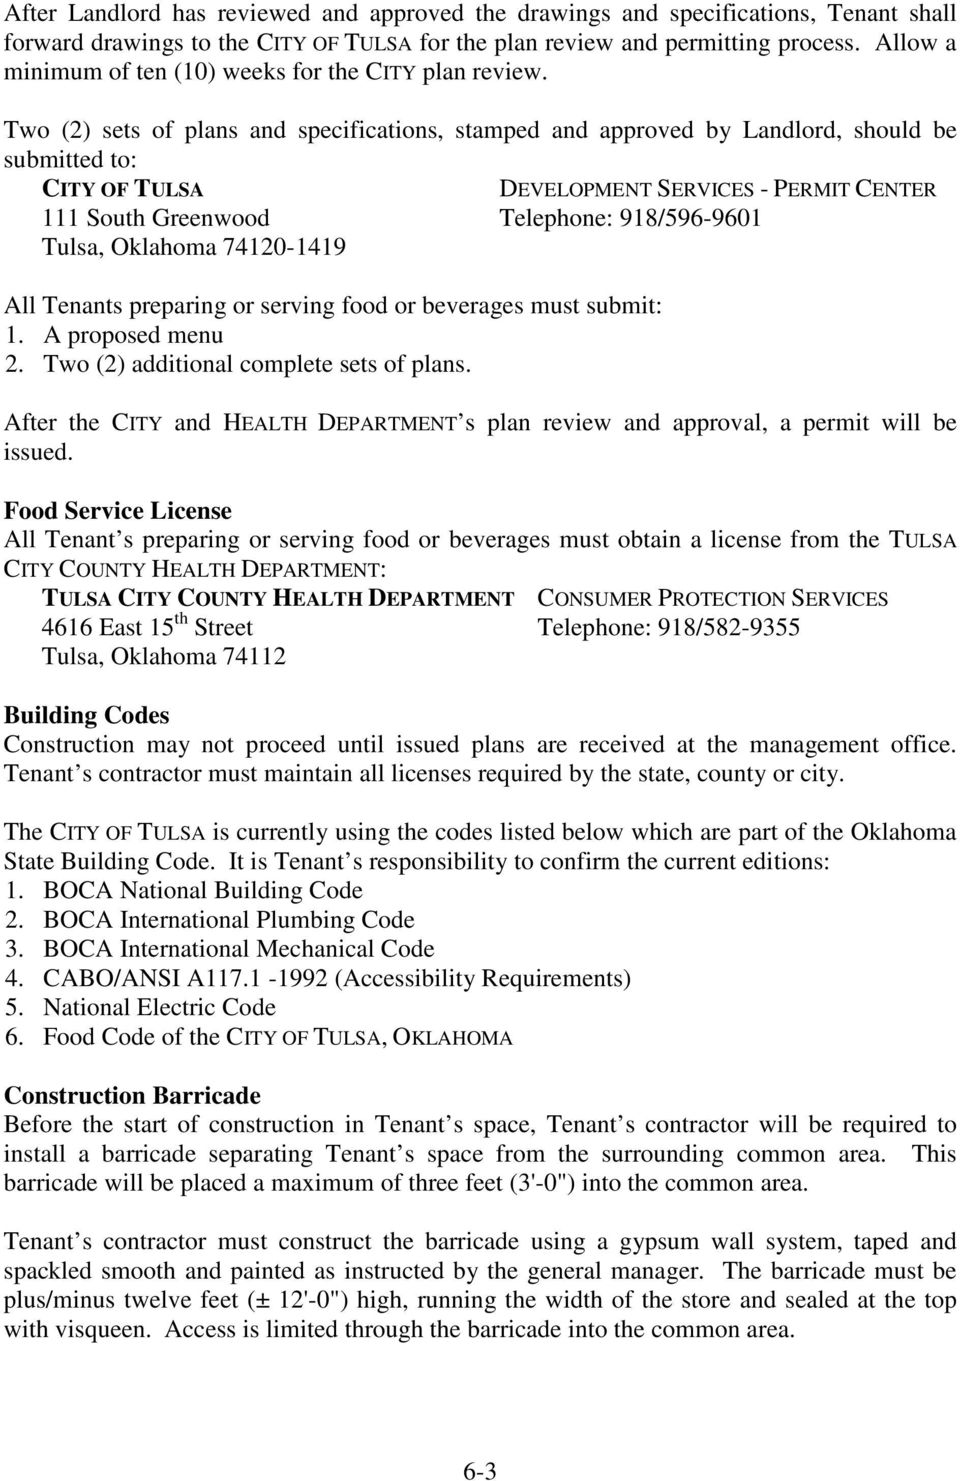 Two (2) sets of plans and specifications, stamped and approved by Landlord, should be submitted to: CITY OF TULSA DEVELOPMENT SERVICES - PERMIT CENTER 111 South Greenwood Telephone: 918/596-9601